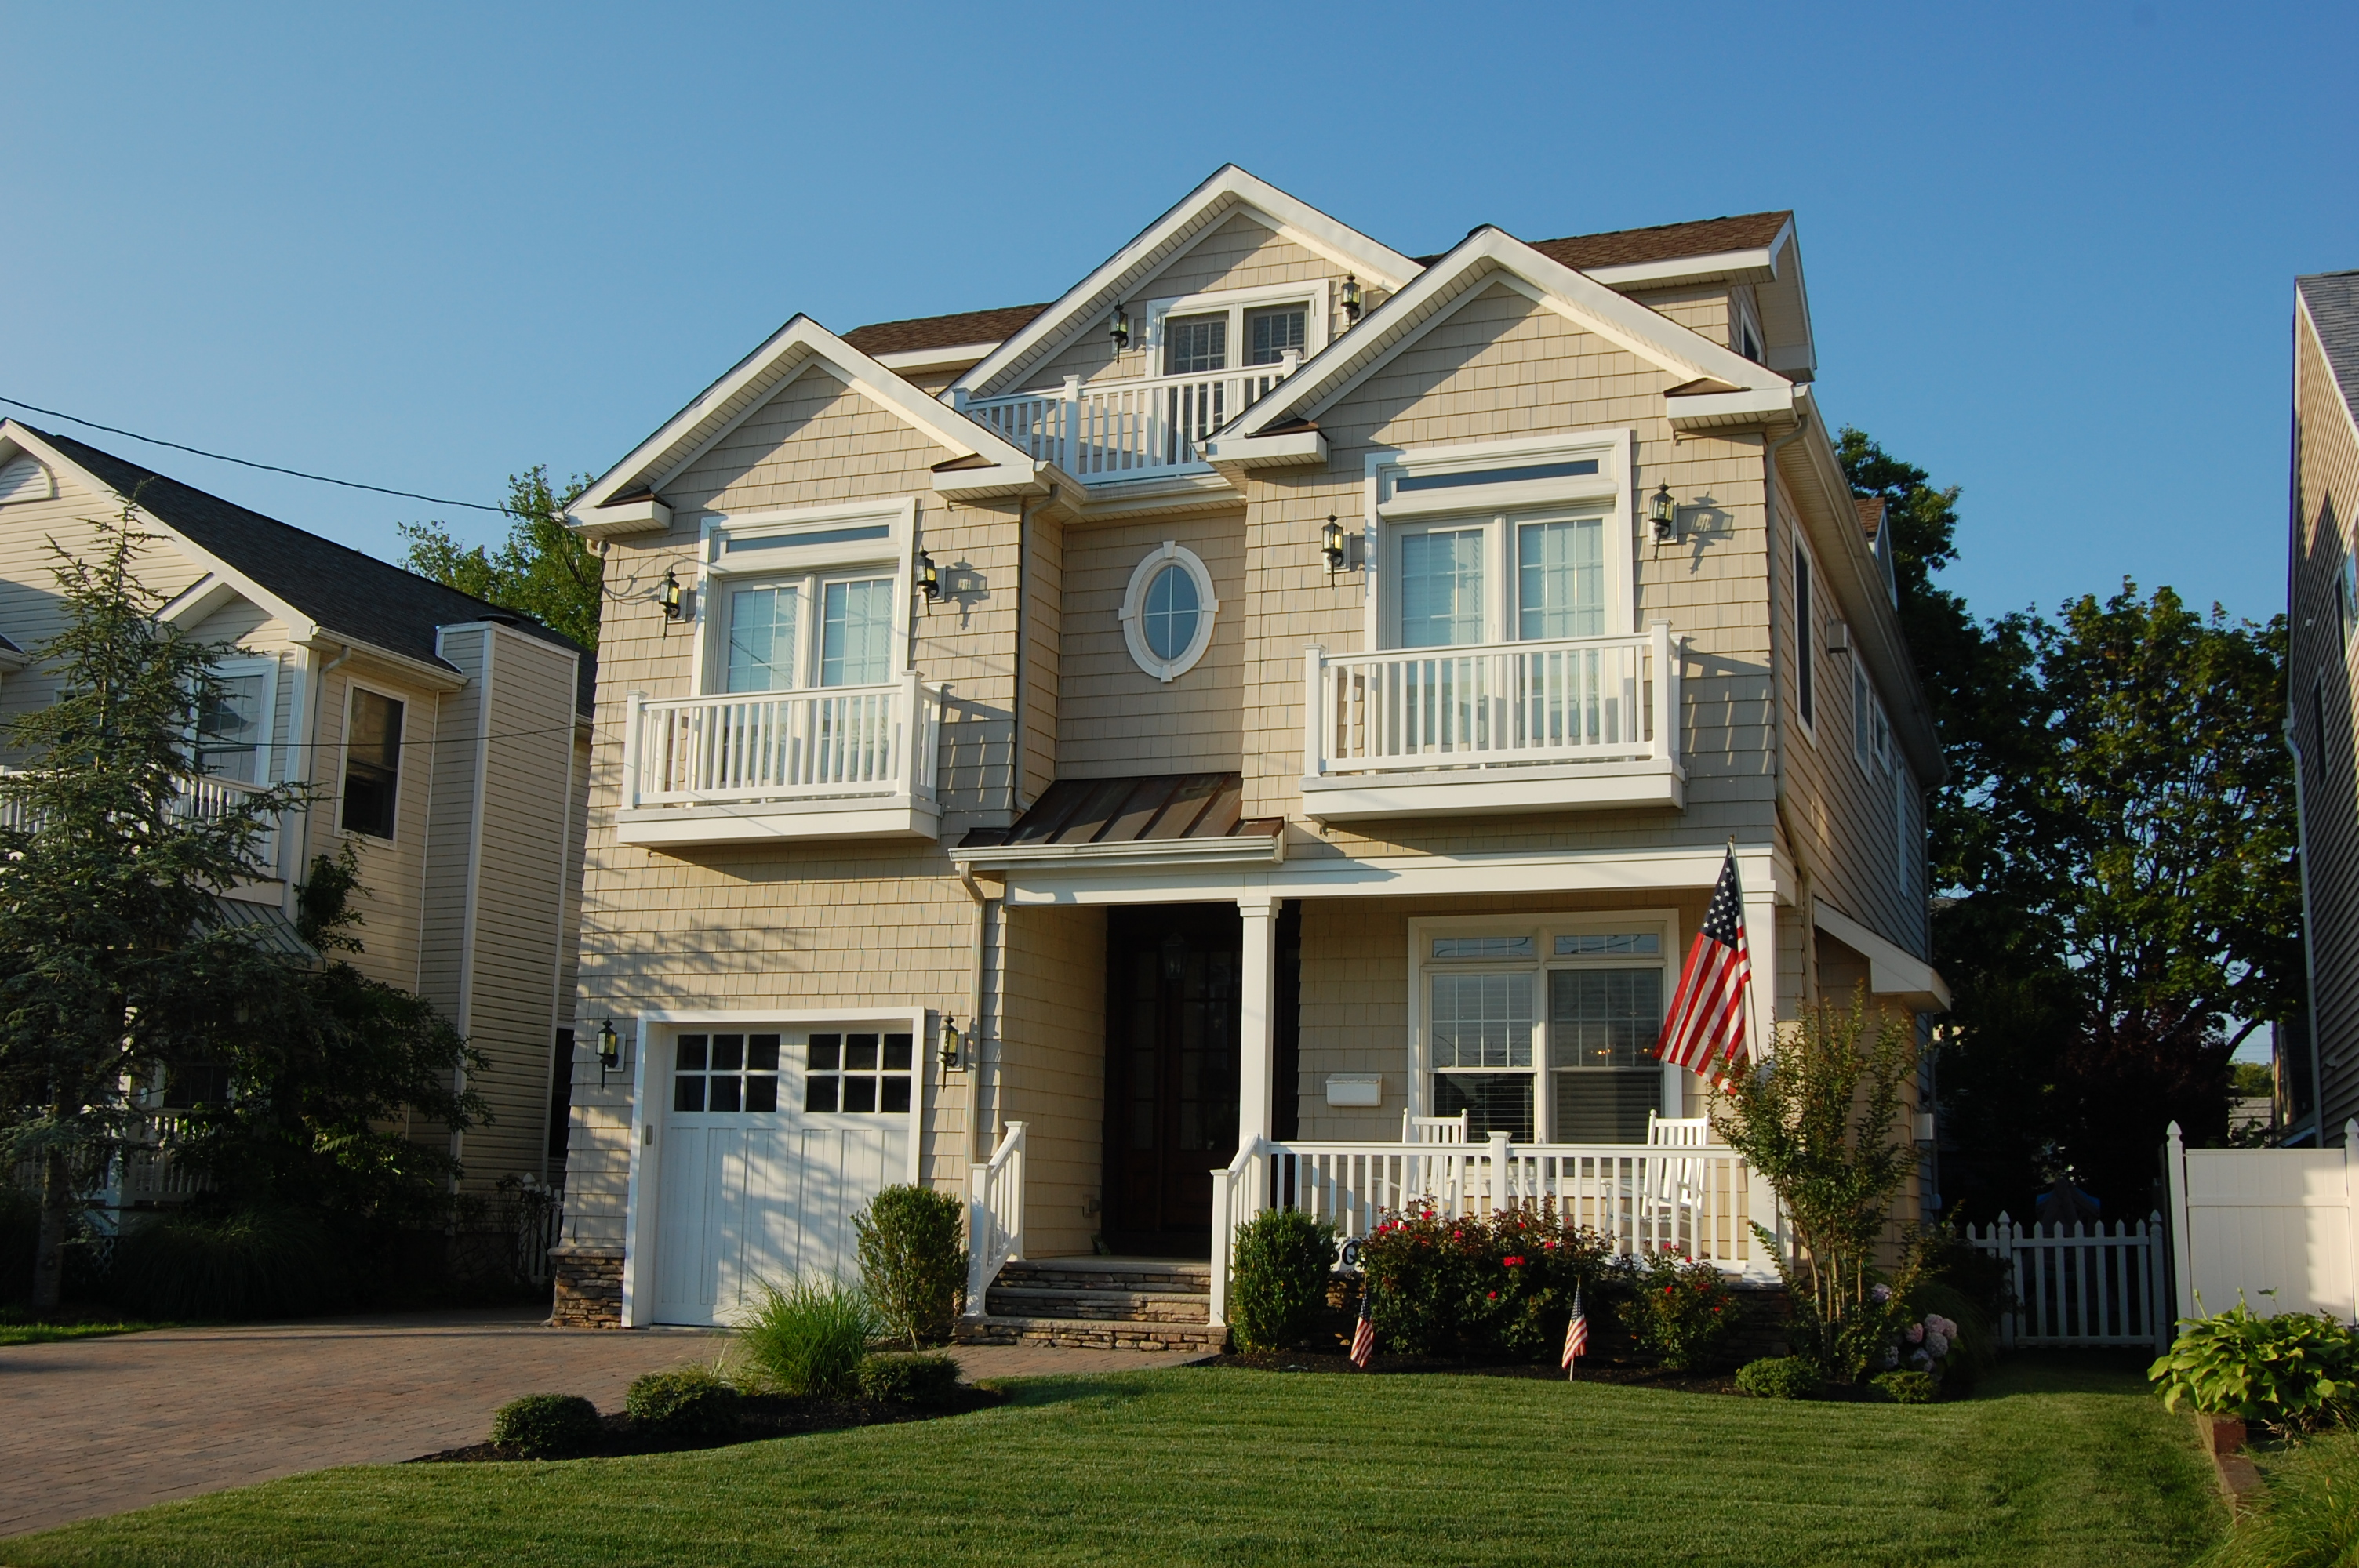 Single Family Home for Sale at Beautifully Appointed Home! 360 River Place Manasquan, New Jersey 08736 United States